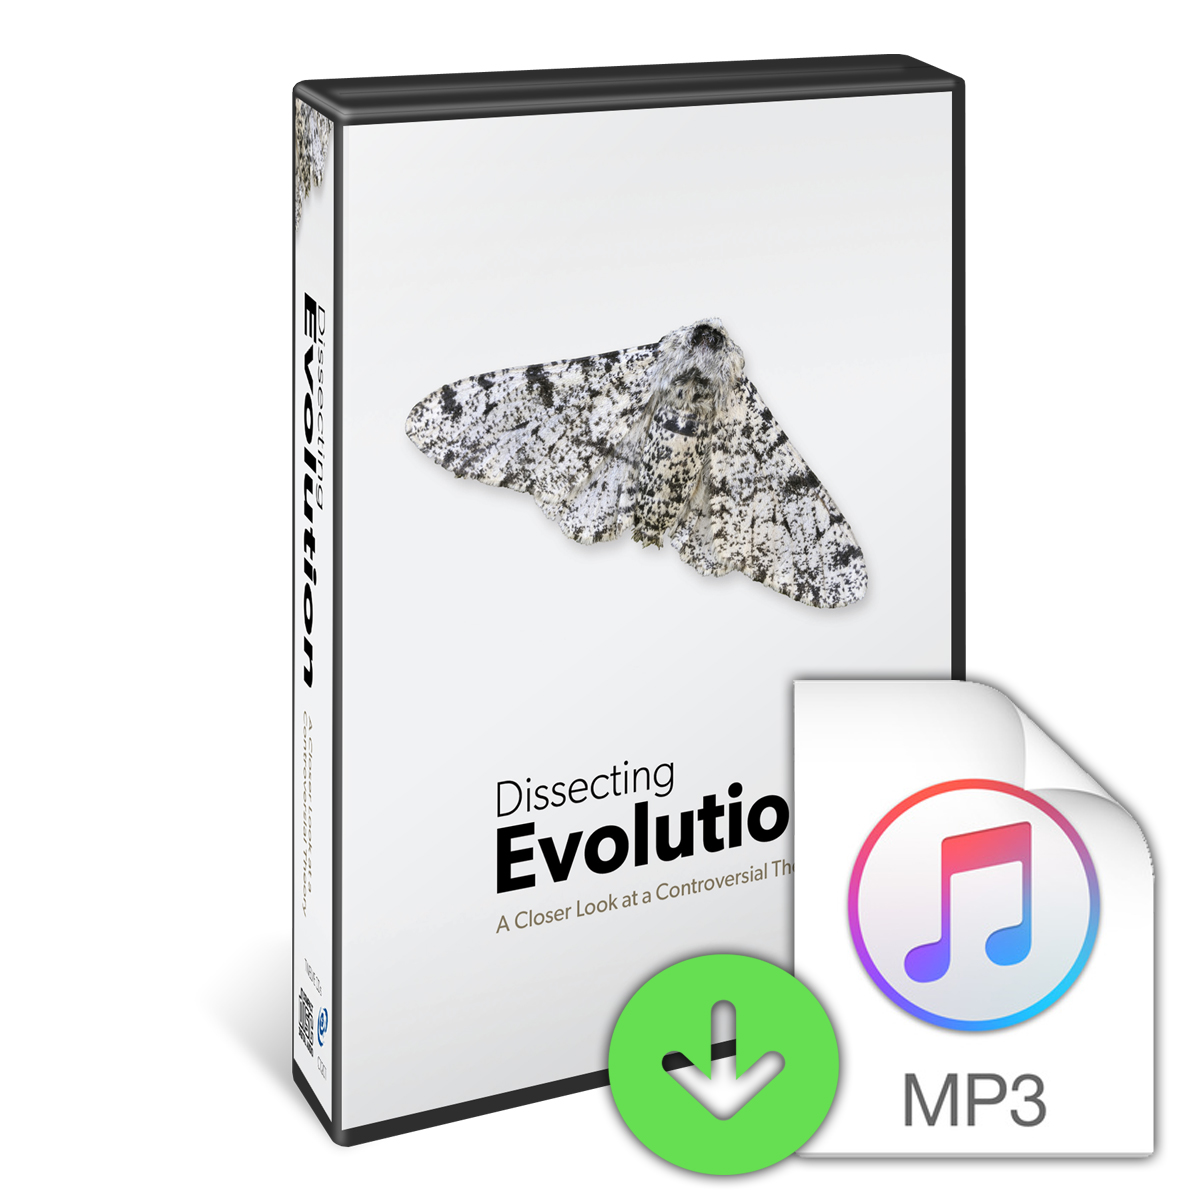 Dissecting Evolution (Downloadable MP3) Image